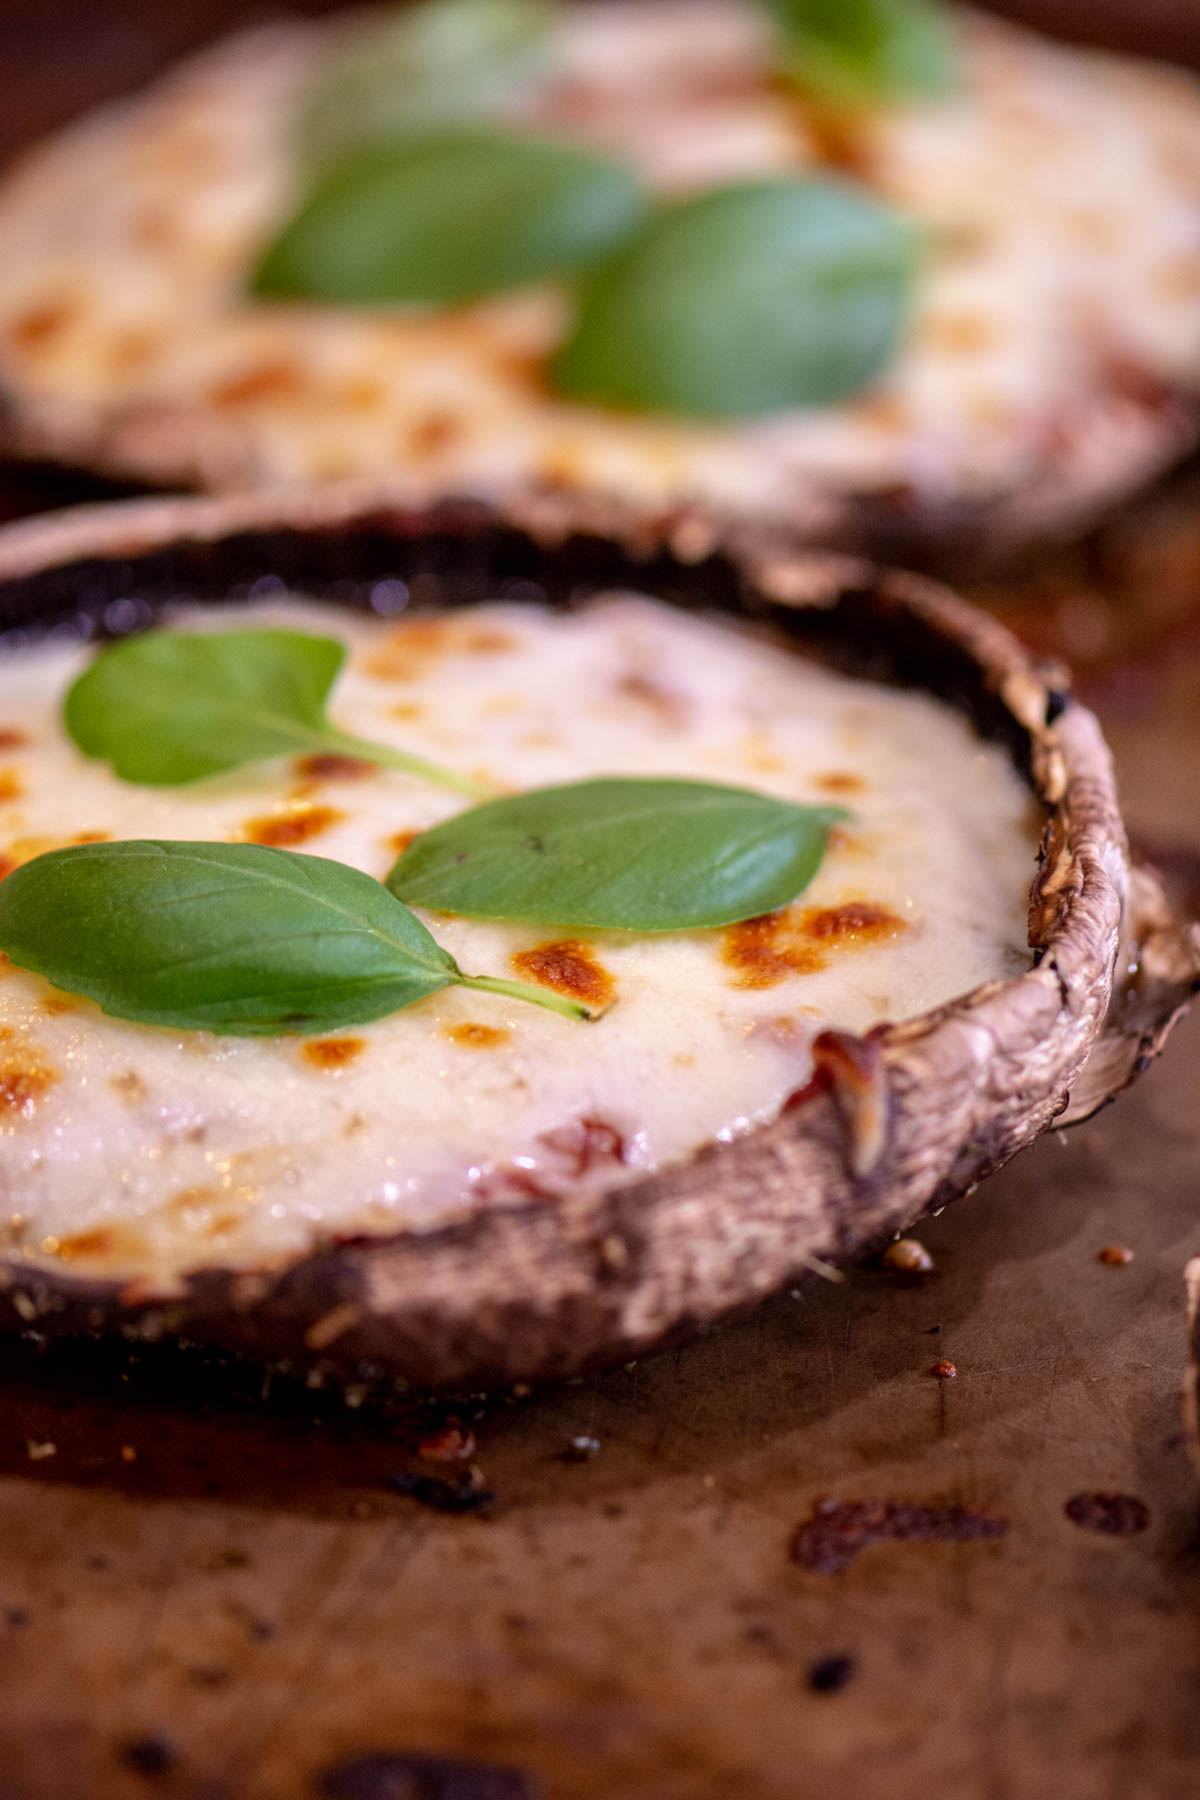 Fresh Basil and Mozzarella on top of the baked Portobello Mushroom on a sheet pan.